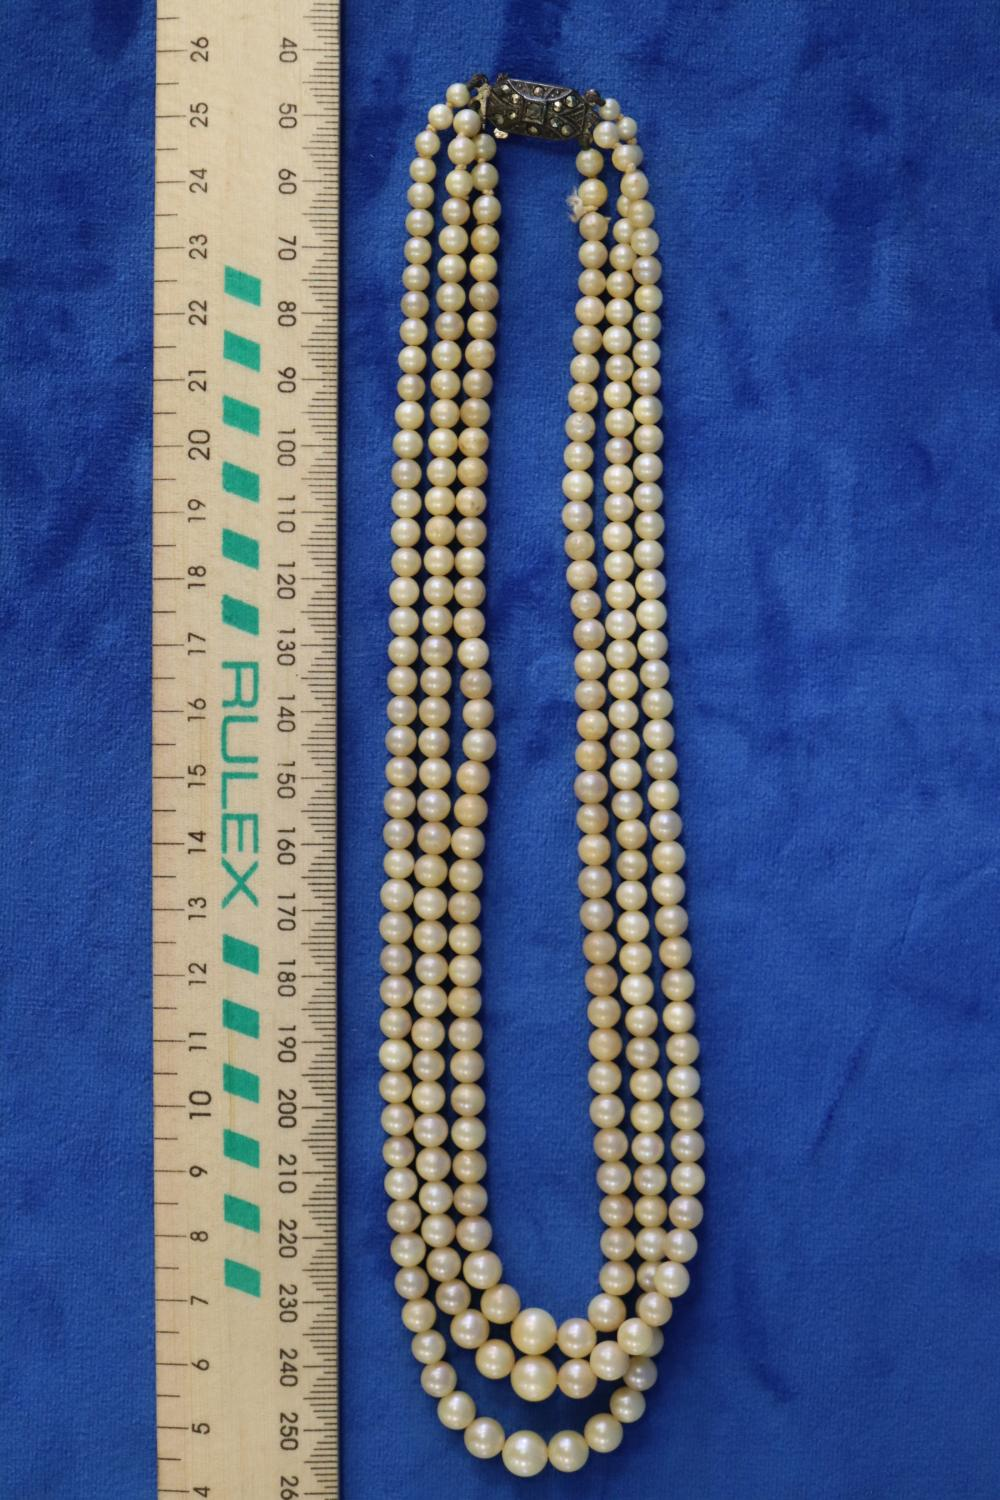 BOXED PEARL NECKLACE WITH STERLING CLASP